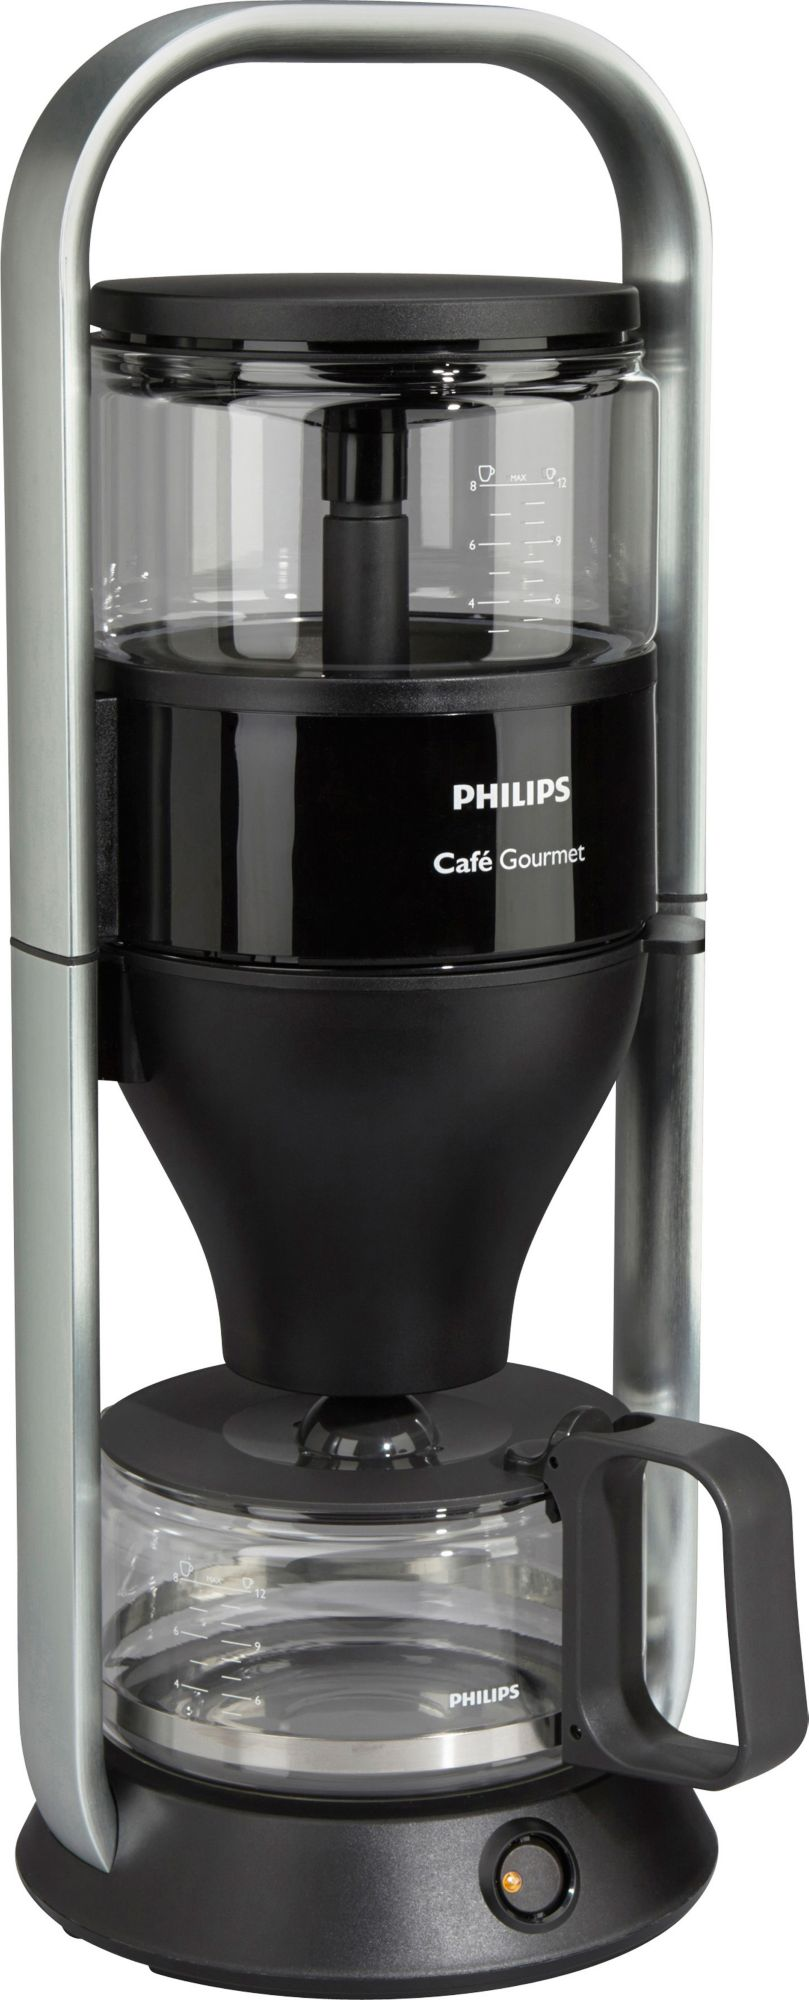 philips kaffeemaschine hd540760 new caf gourmet schwab. Black Bedroom Furniture Sets. Home Design Ideas